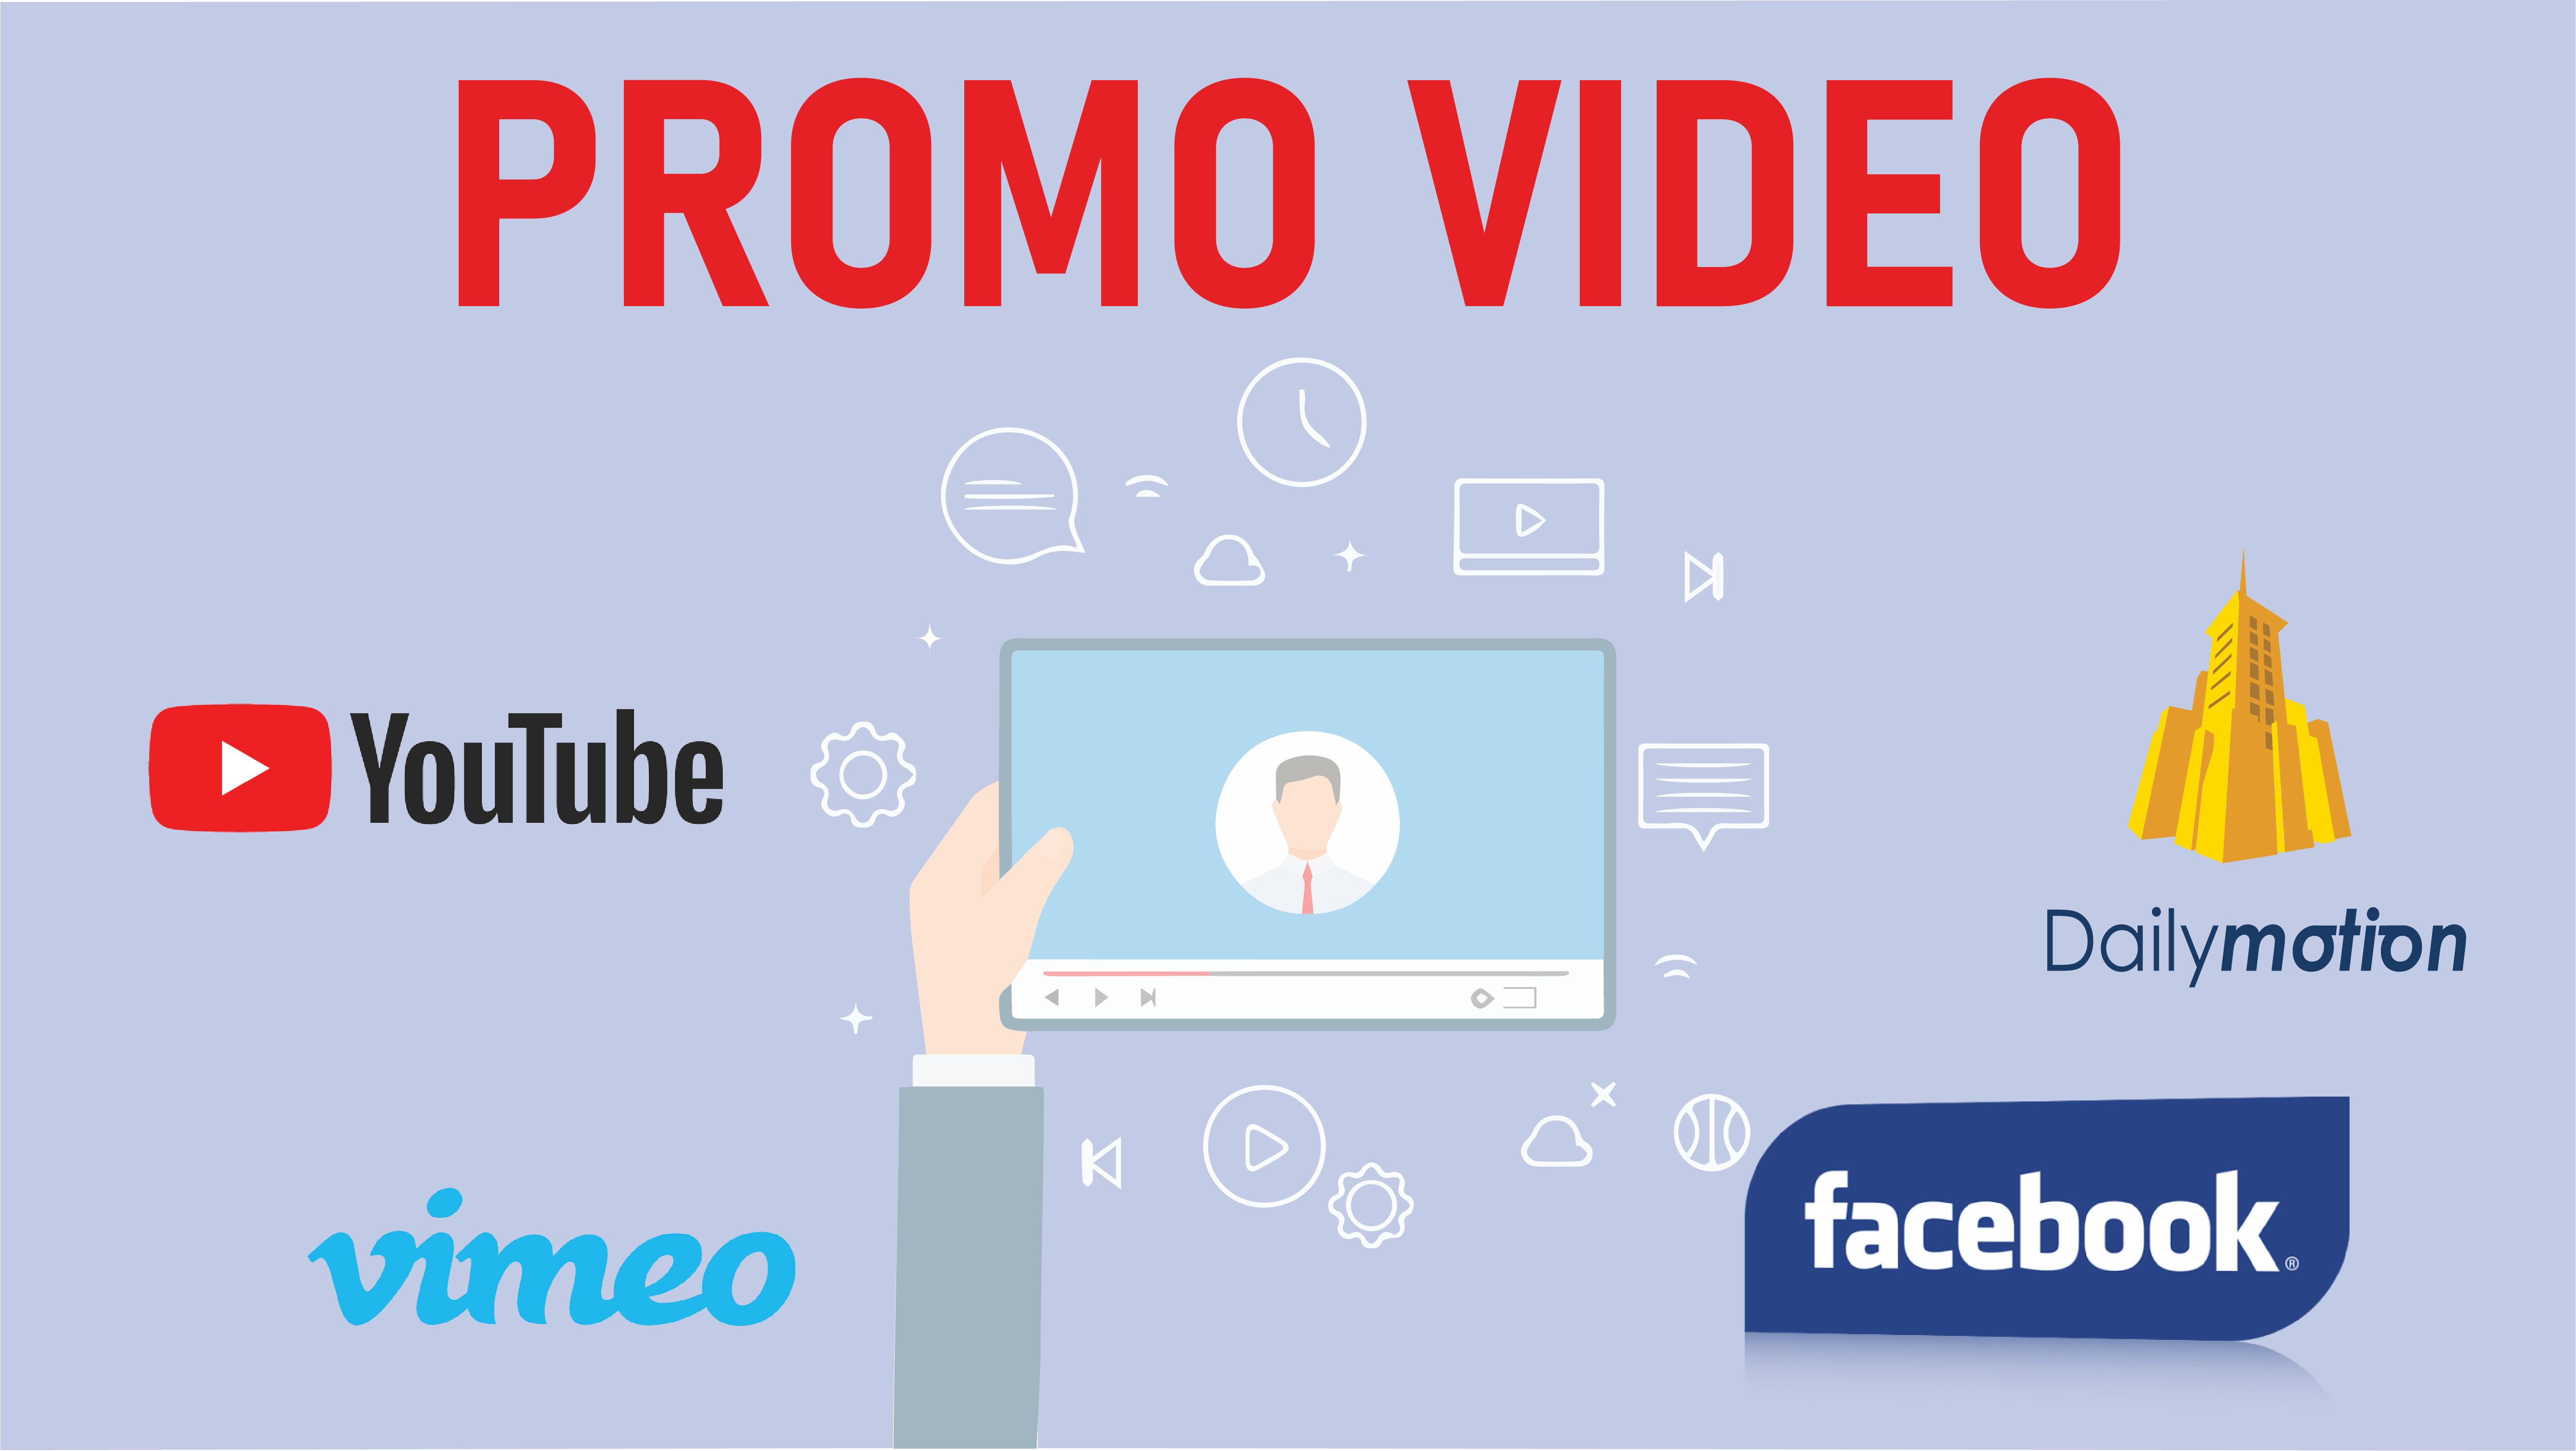 I WILL CREATE AN AMAZING PROMOTIONAL VIDEO FOR YOUR BUSINESS,  IDEA,  SKILL OR SERVICE